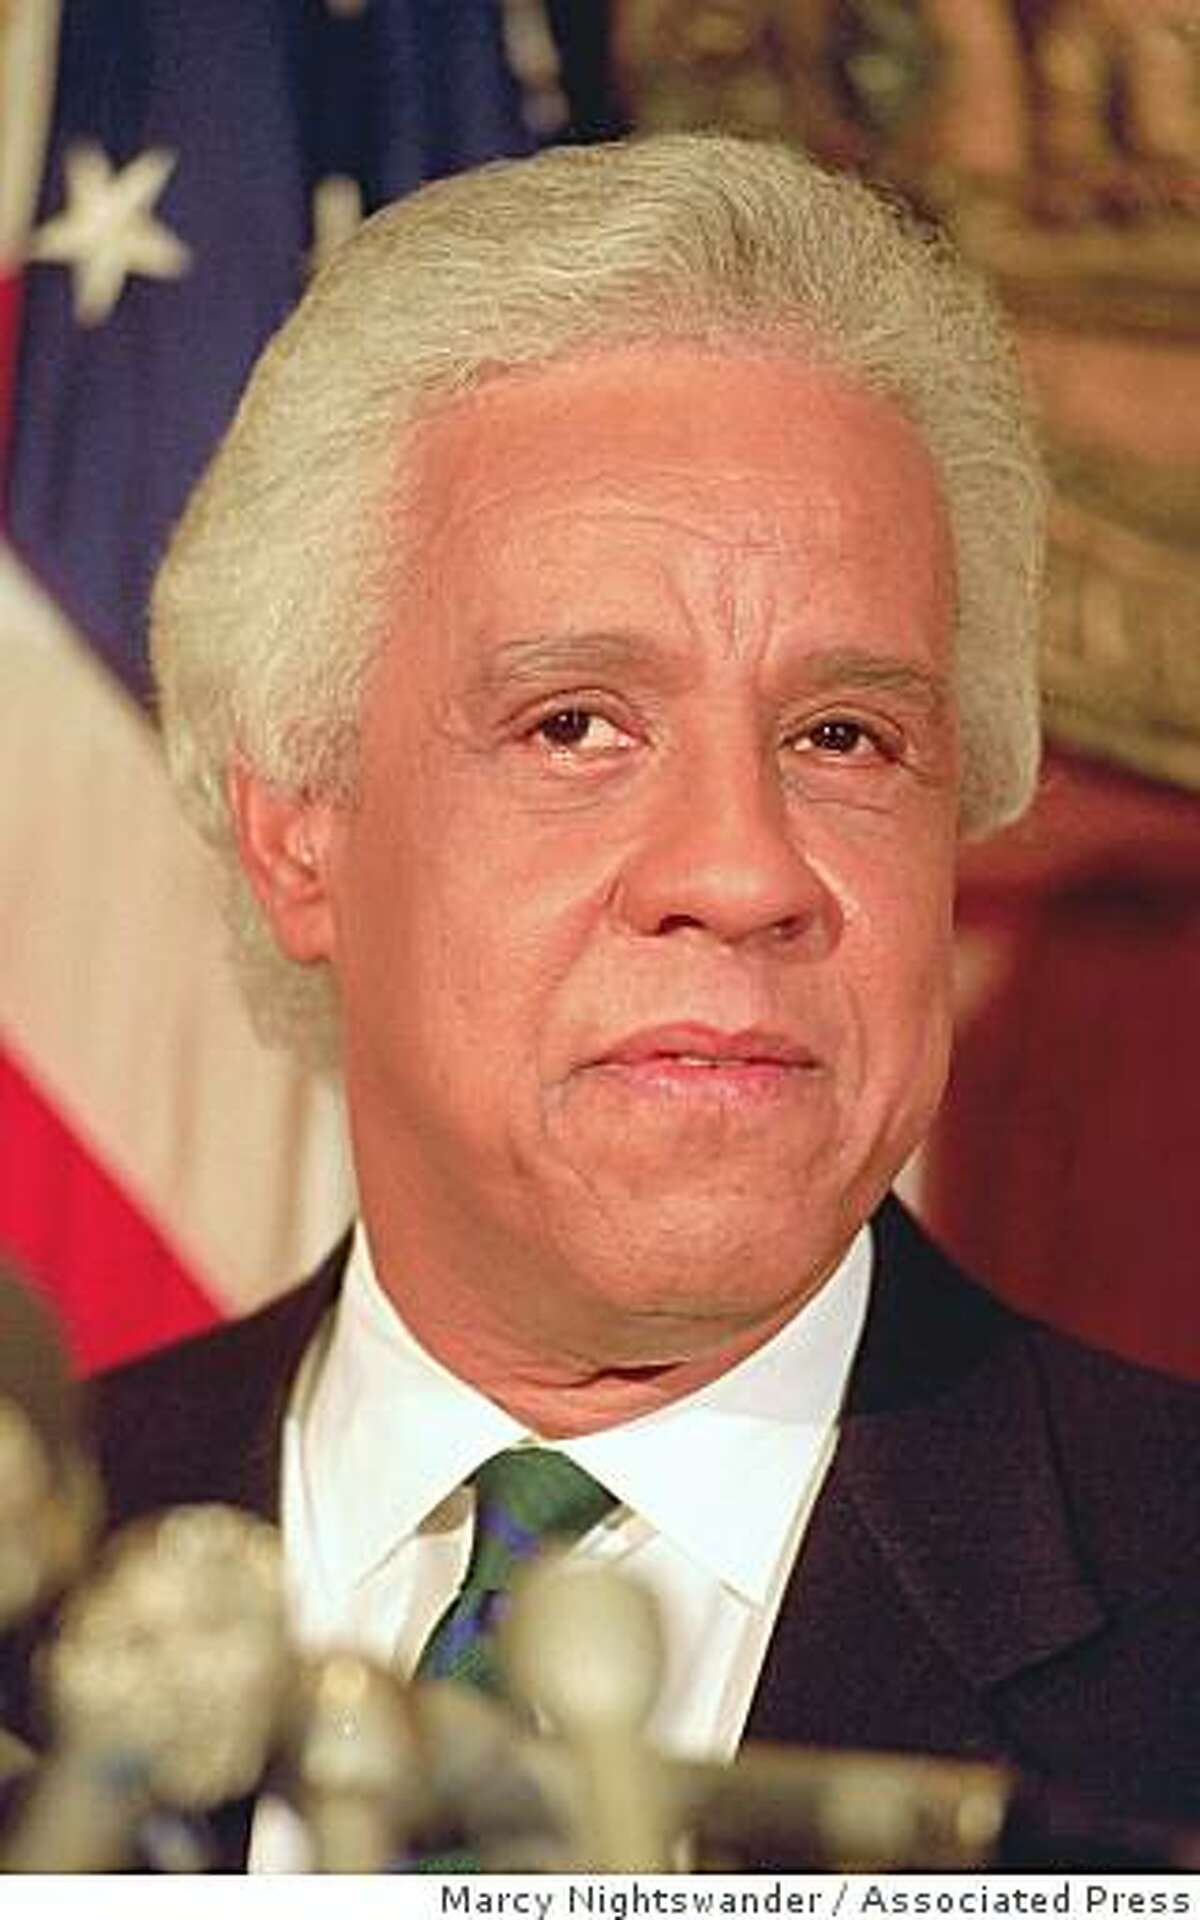 Former Gov. L. Douglas Wilder, shown in this 1992 file photo, abandoned his independent run for the the Senate Thursday, Sept. 15, 1994 after two polls showed him far behind his fellow Democrat and longtime rival, Sen. Charles S. Robb. Wilder's withdrawl reduced the chance that a split among Democrats would hand the seat to conservative Republican Oliver North. (AP Photo/File, Marcy Nightswander)